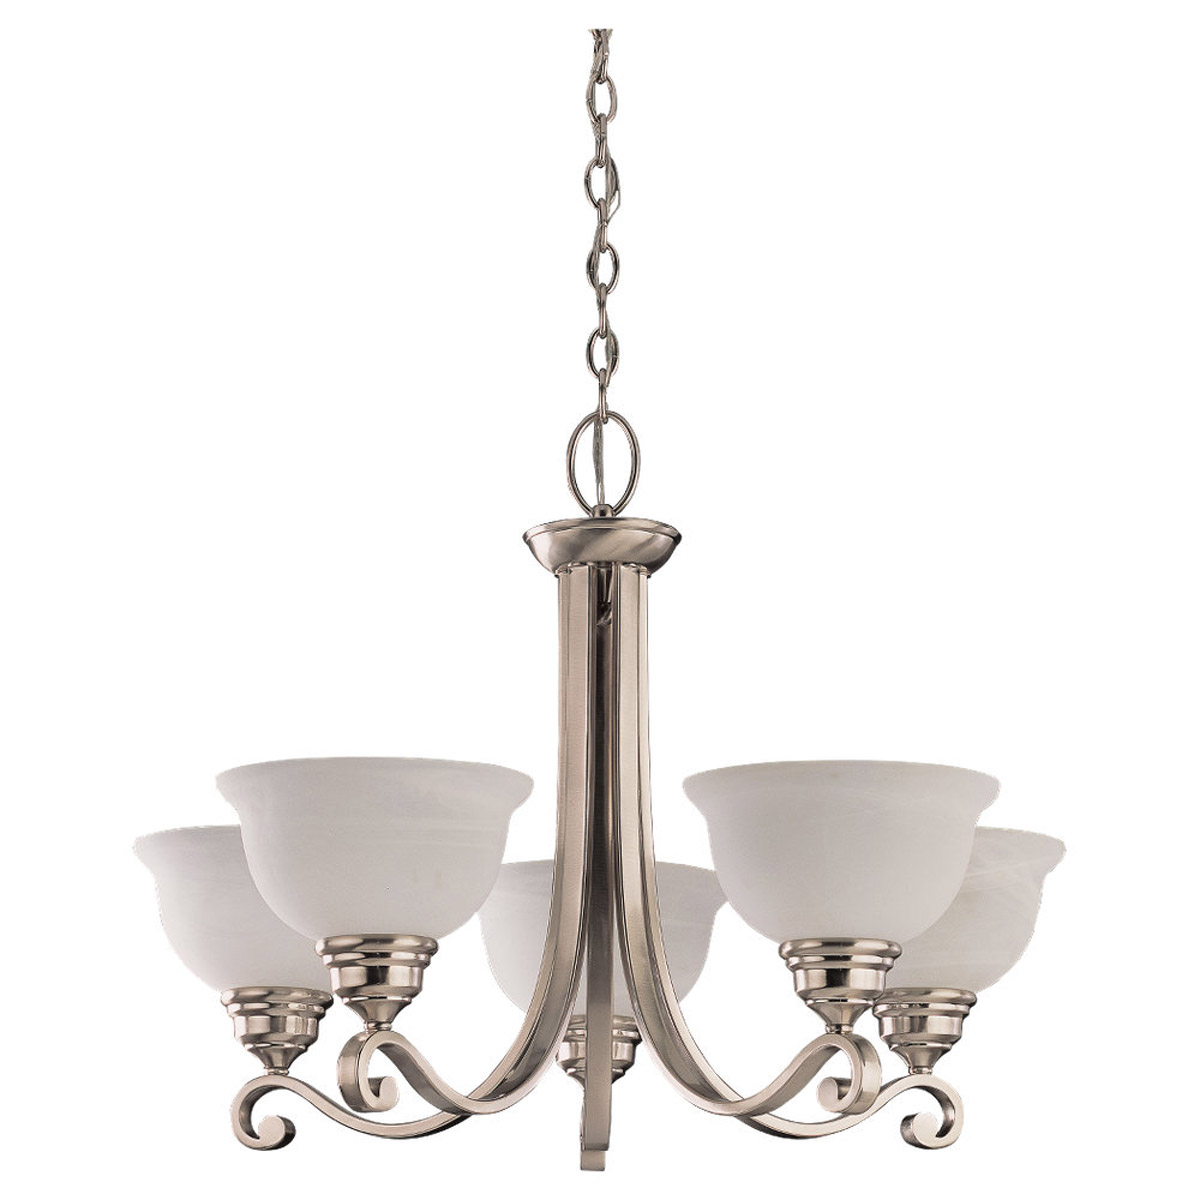 Sea Gull Lighting Serenity 5 Light Chandelier in Brushed Nickel 31191-962 photo